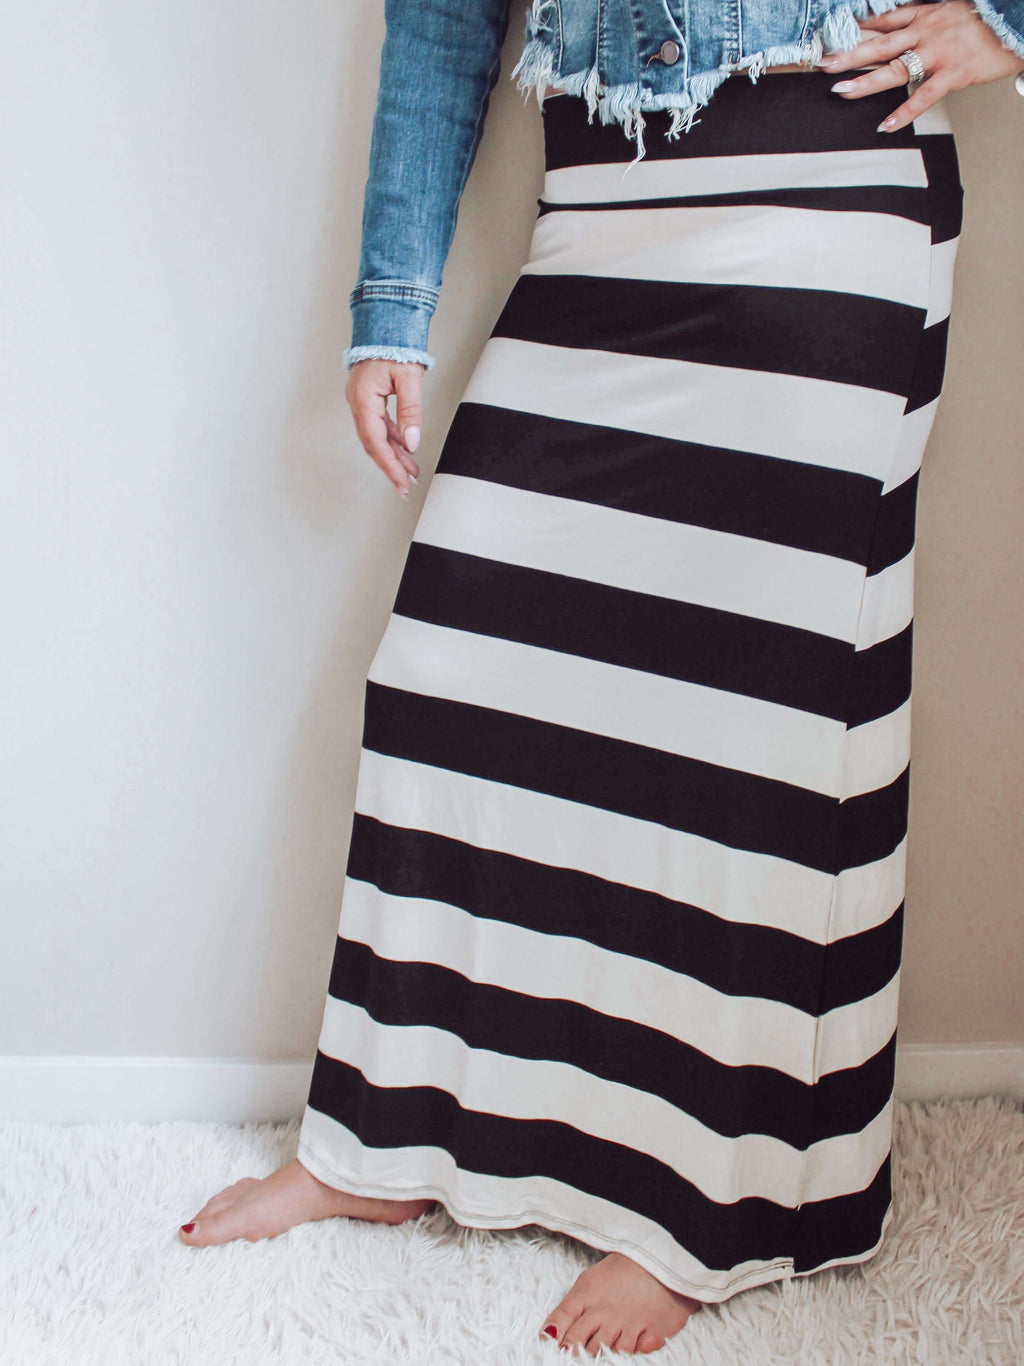 Boutique Clothing Black White Stripe Maxi Skirt with Black T Shirt